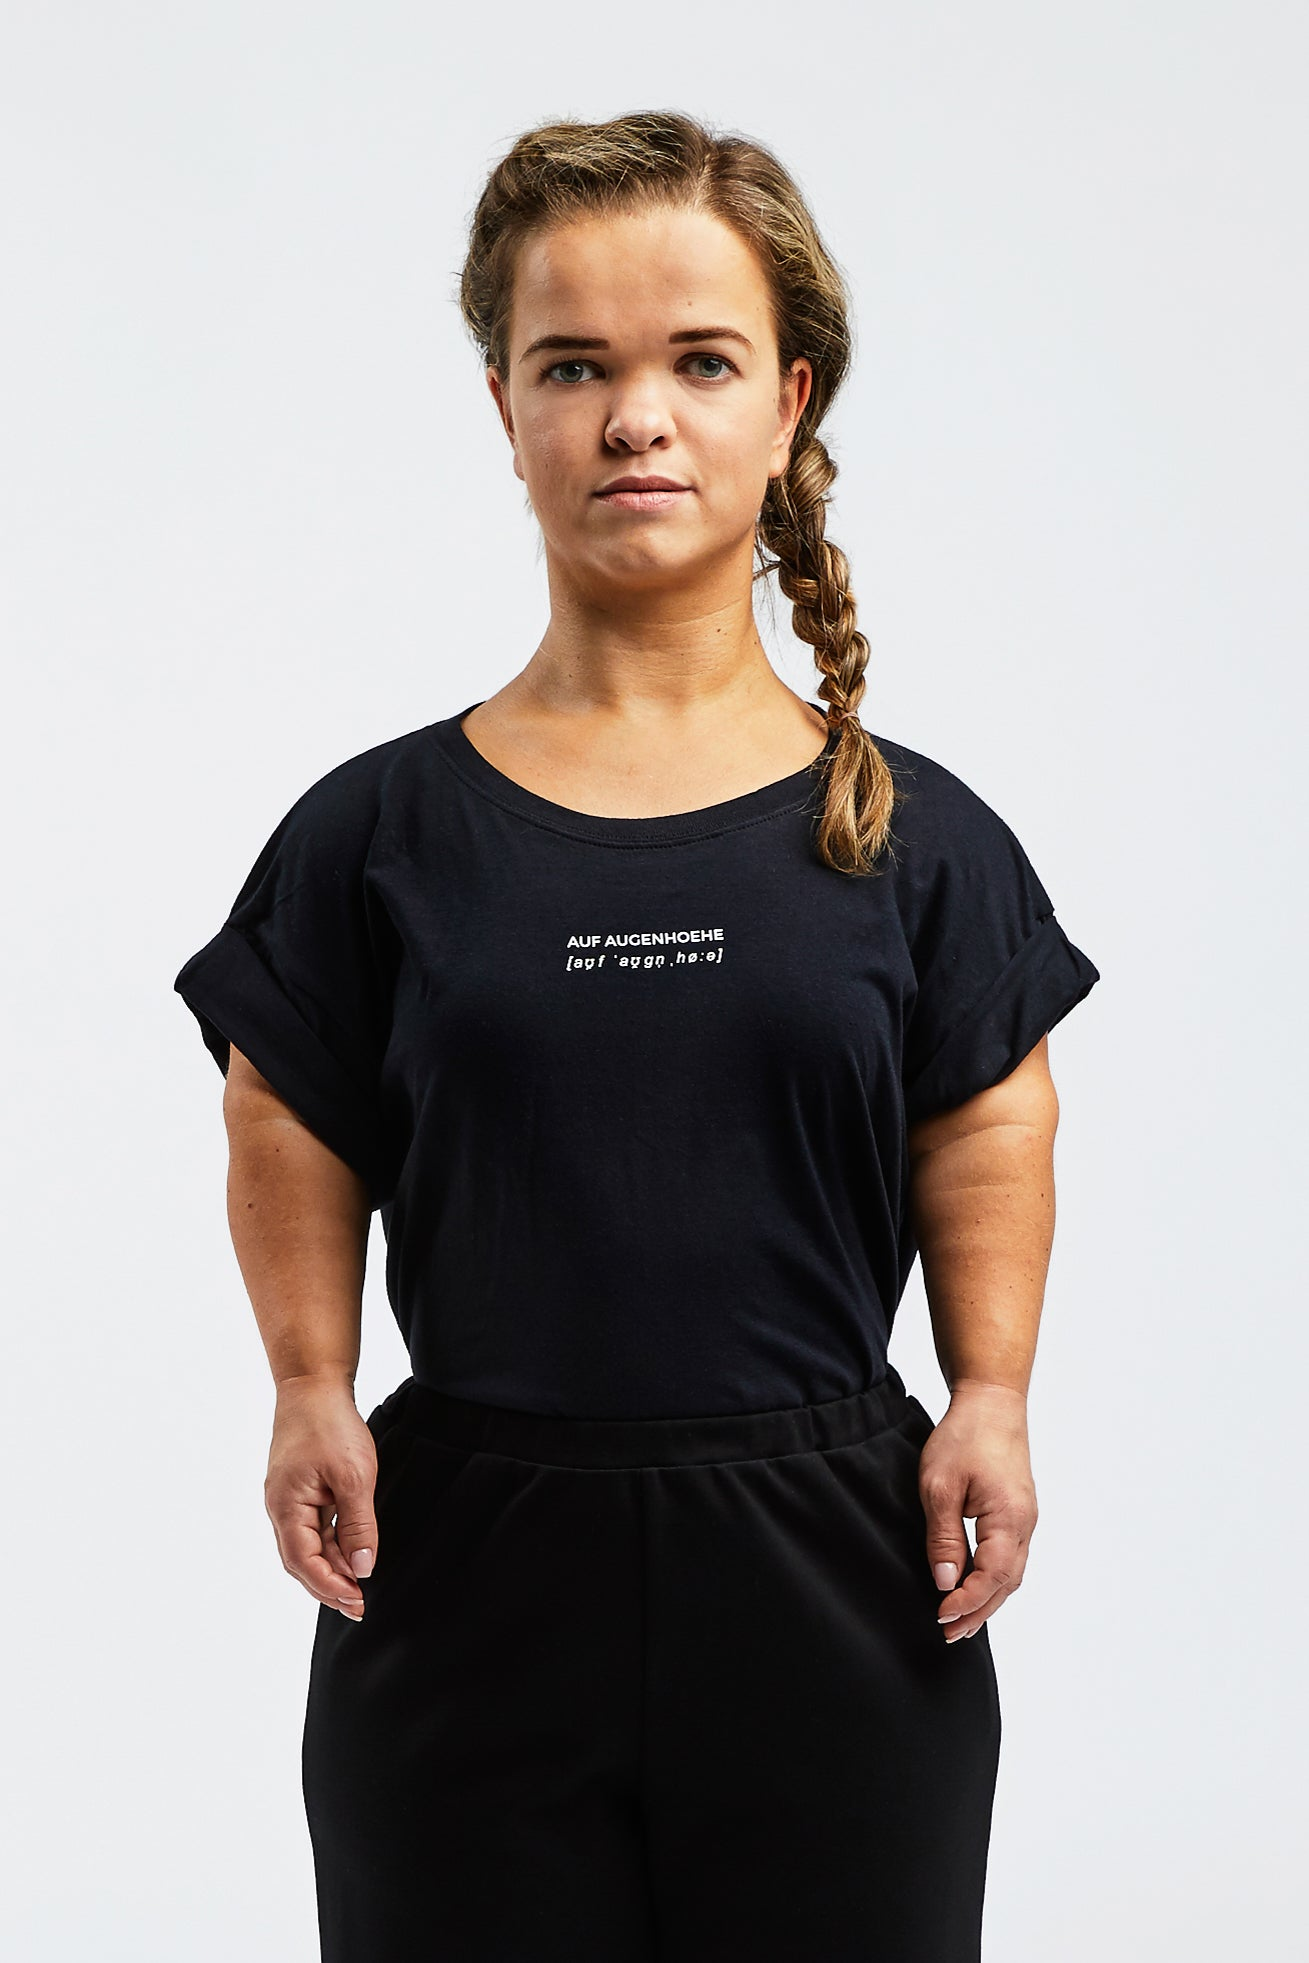 woman with dwarfism wearing a black t-shirt with small white text